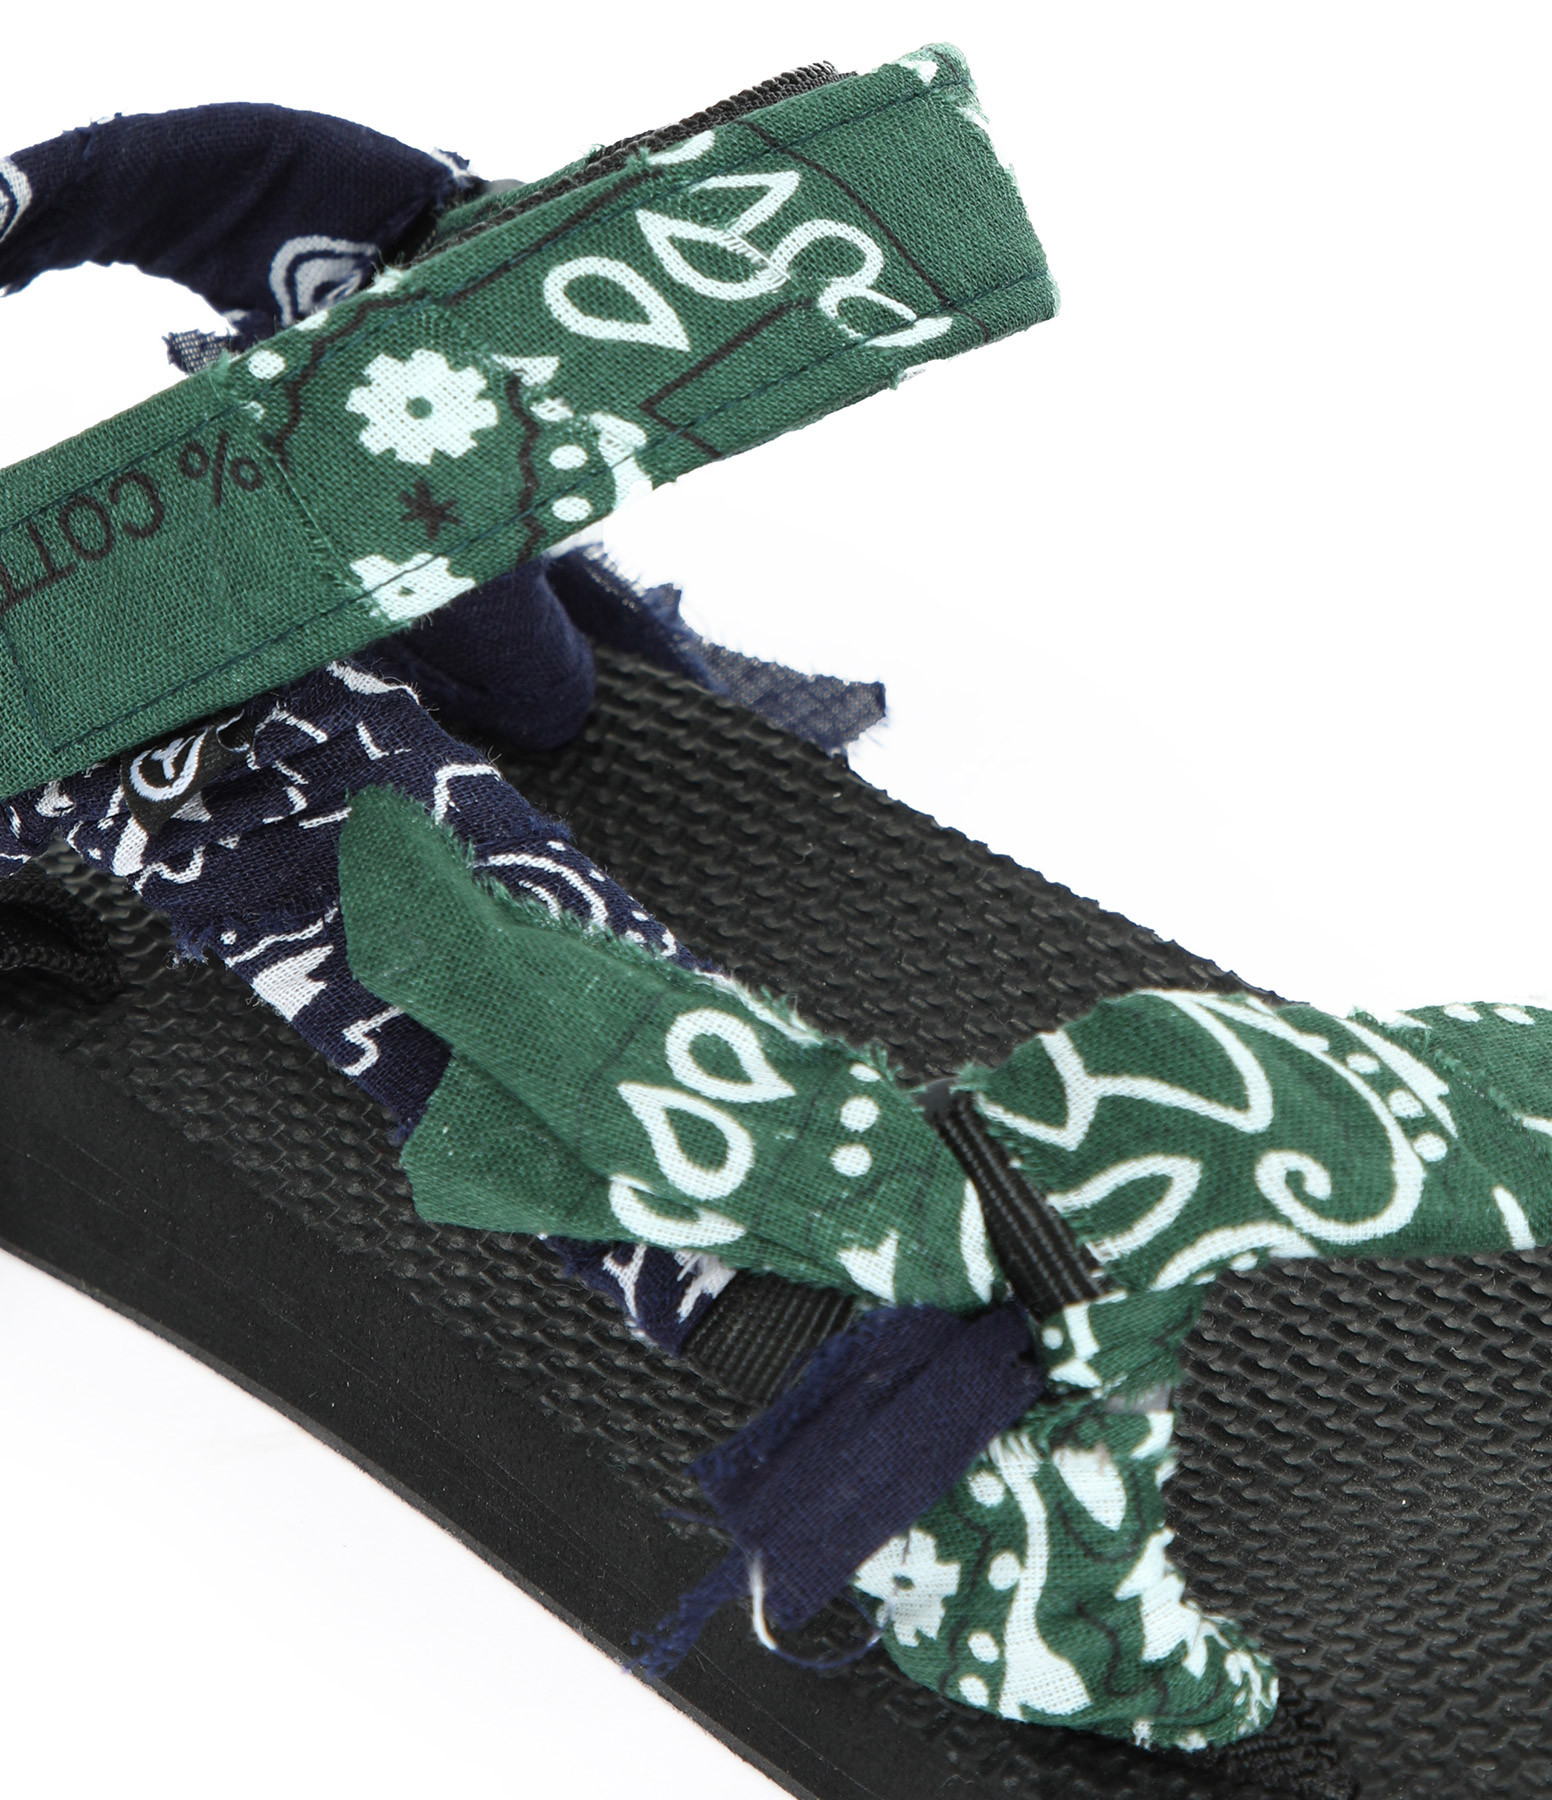 ARIZONA LOVE - Sandales Arizona Bandana Kaki Navy